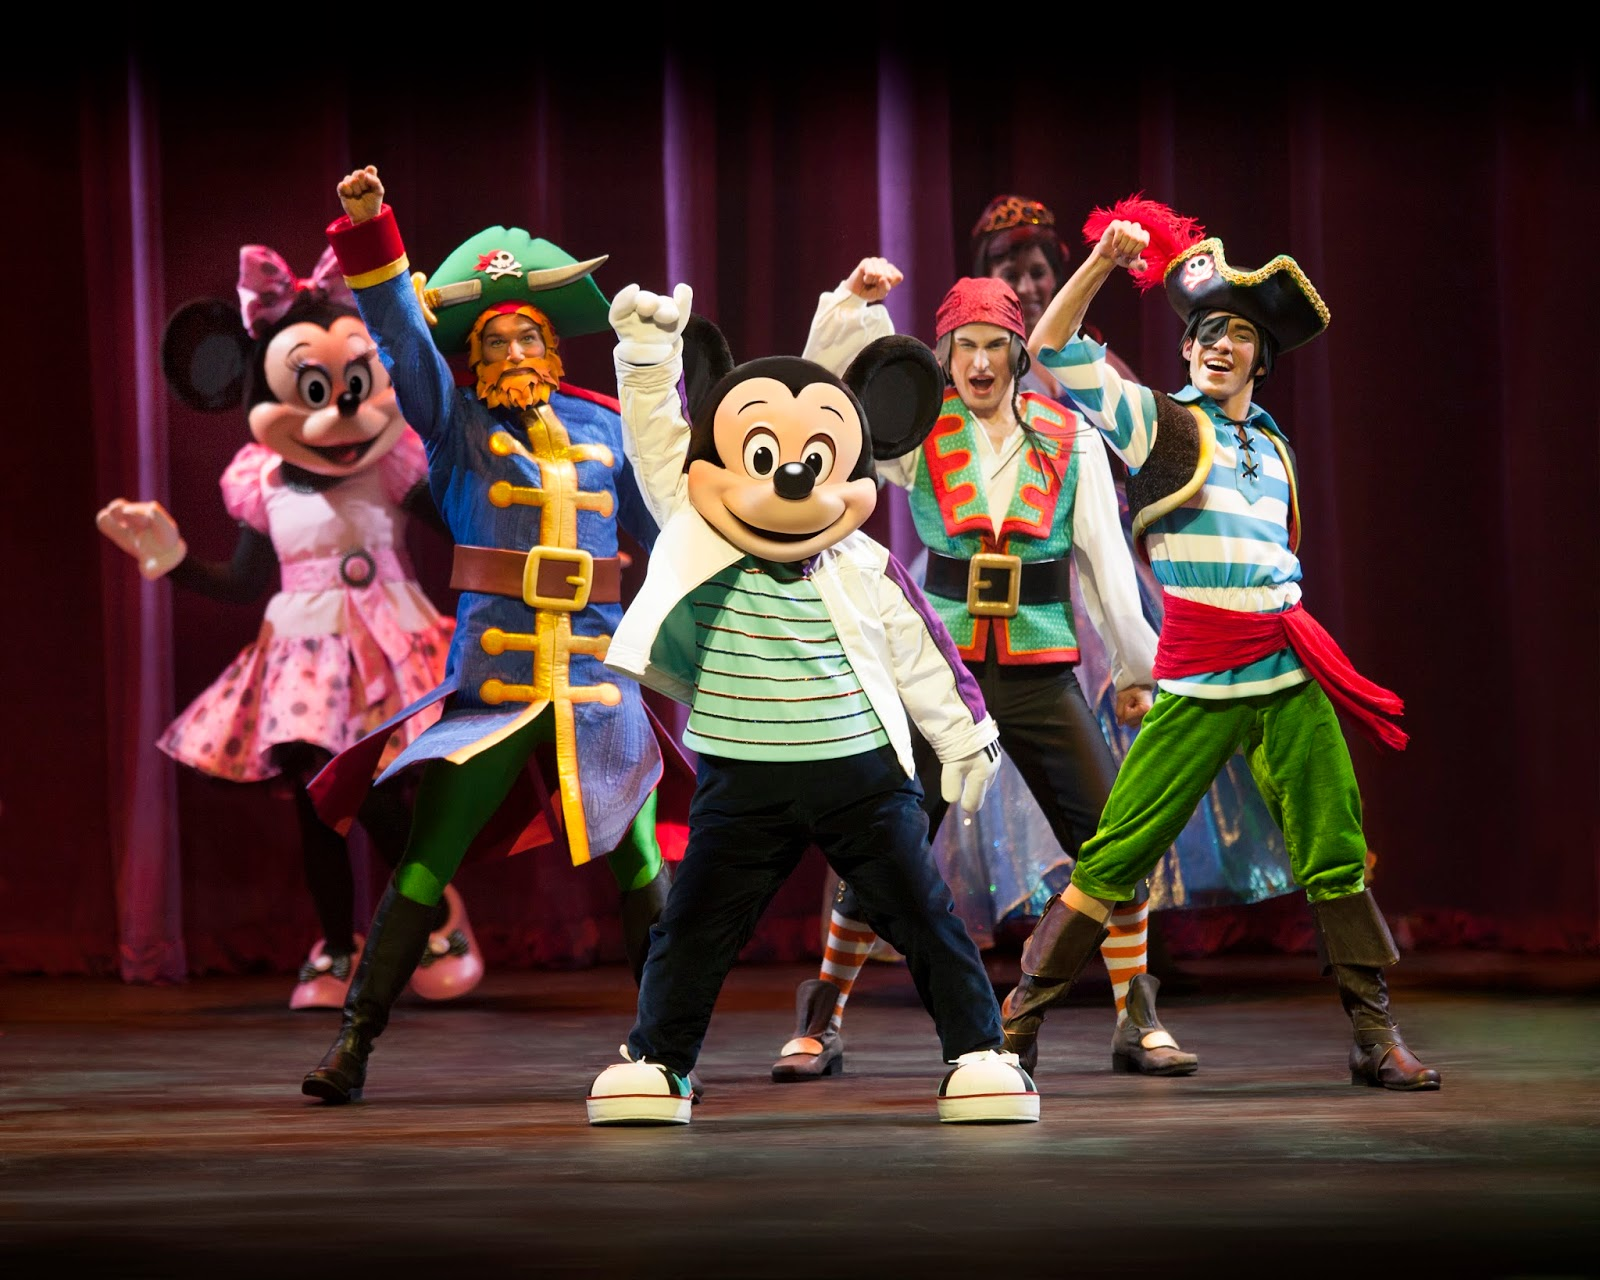 Micky and Minnie at @DisneyLive Pirate & Princess Adventure